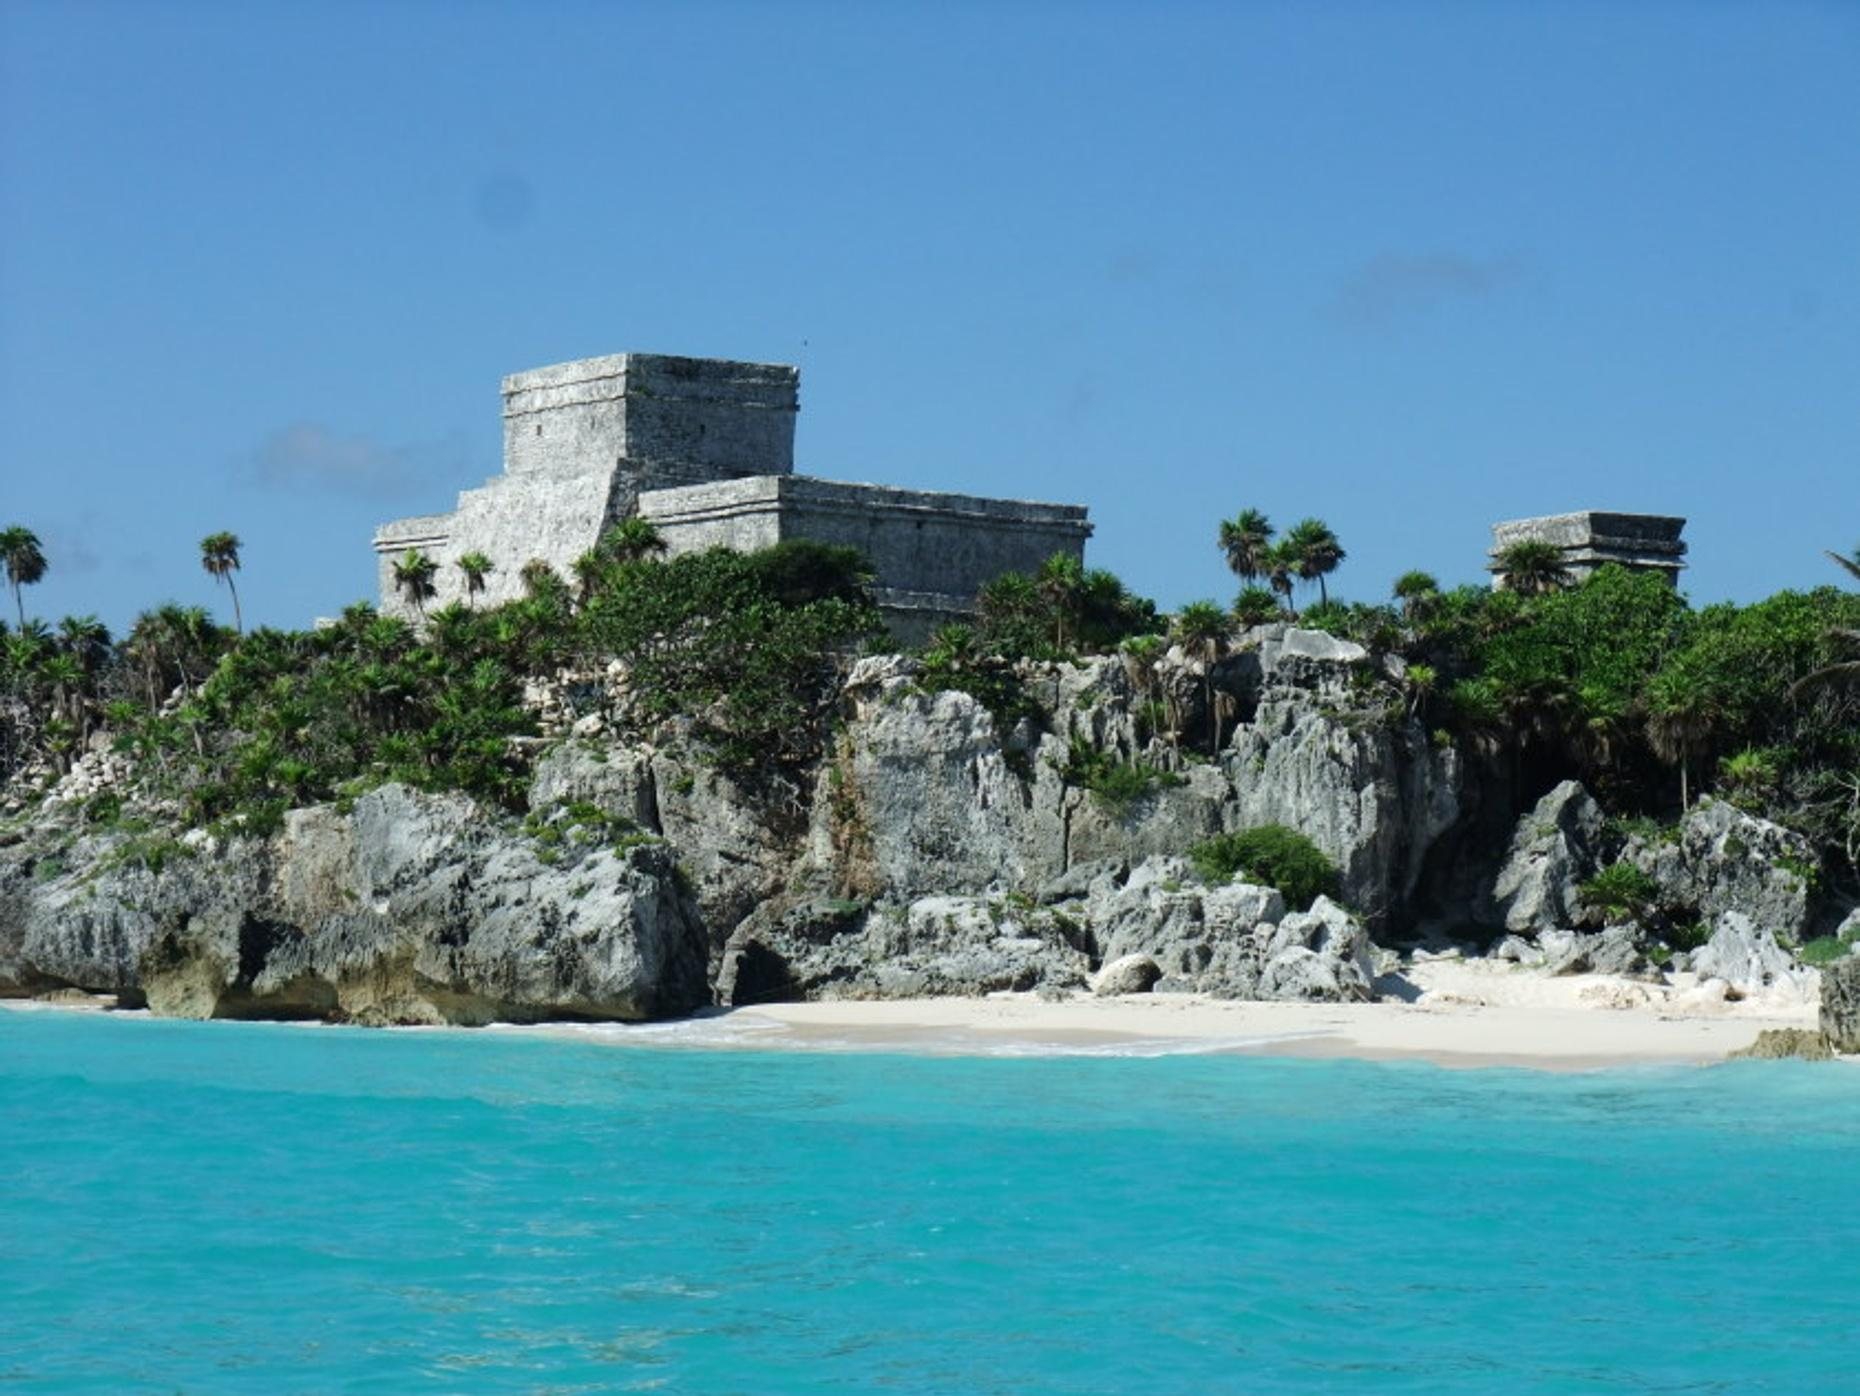 Guided Tour of Tulum's & Coba's Ancient Ruins in Cancun